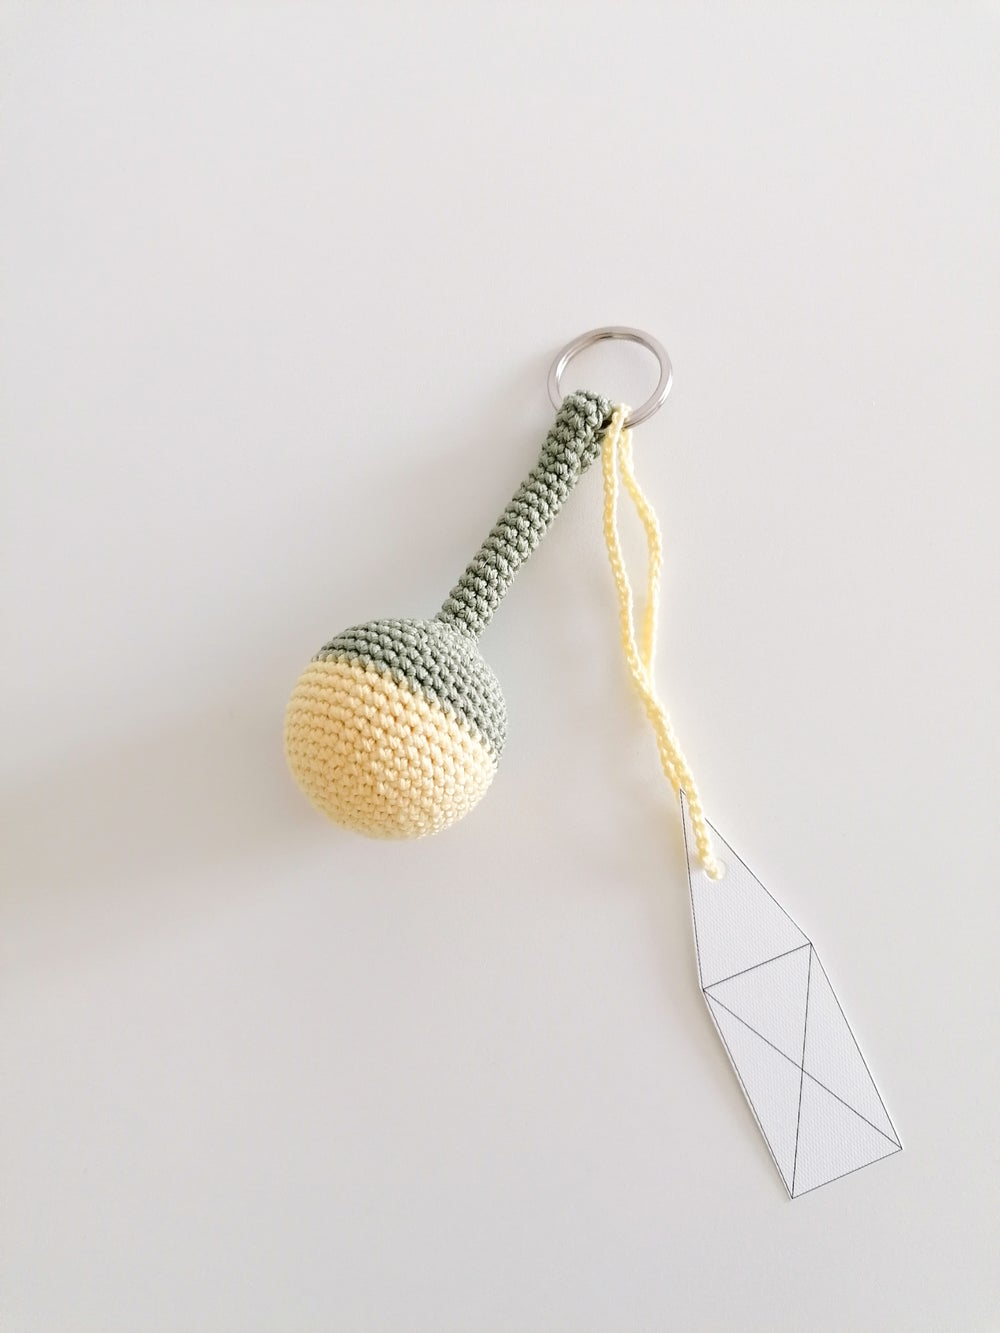 Image of Big Ball Keychain in Light Olive Green and Yellow